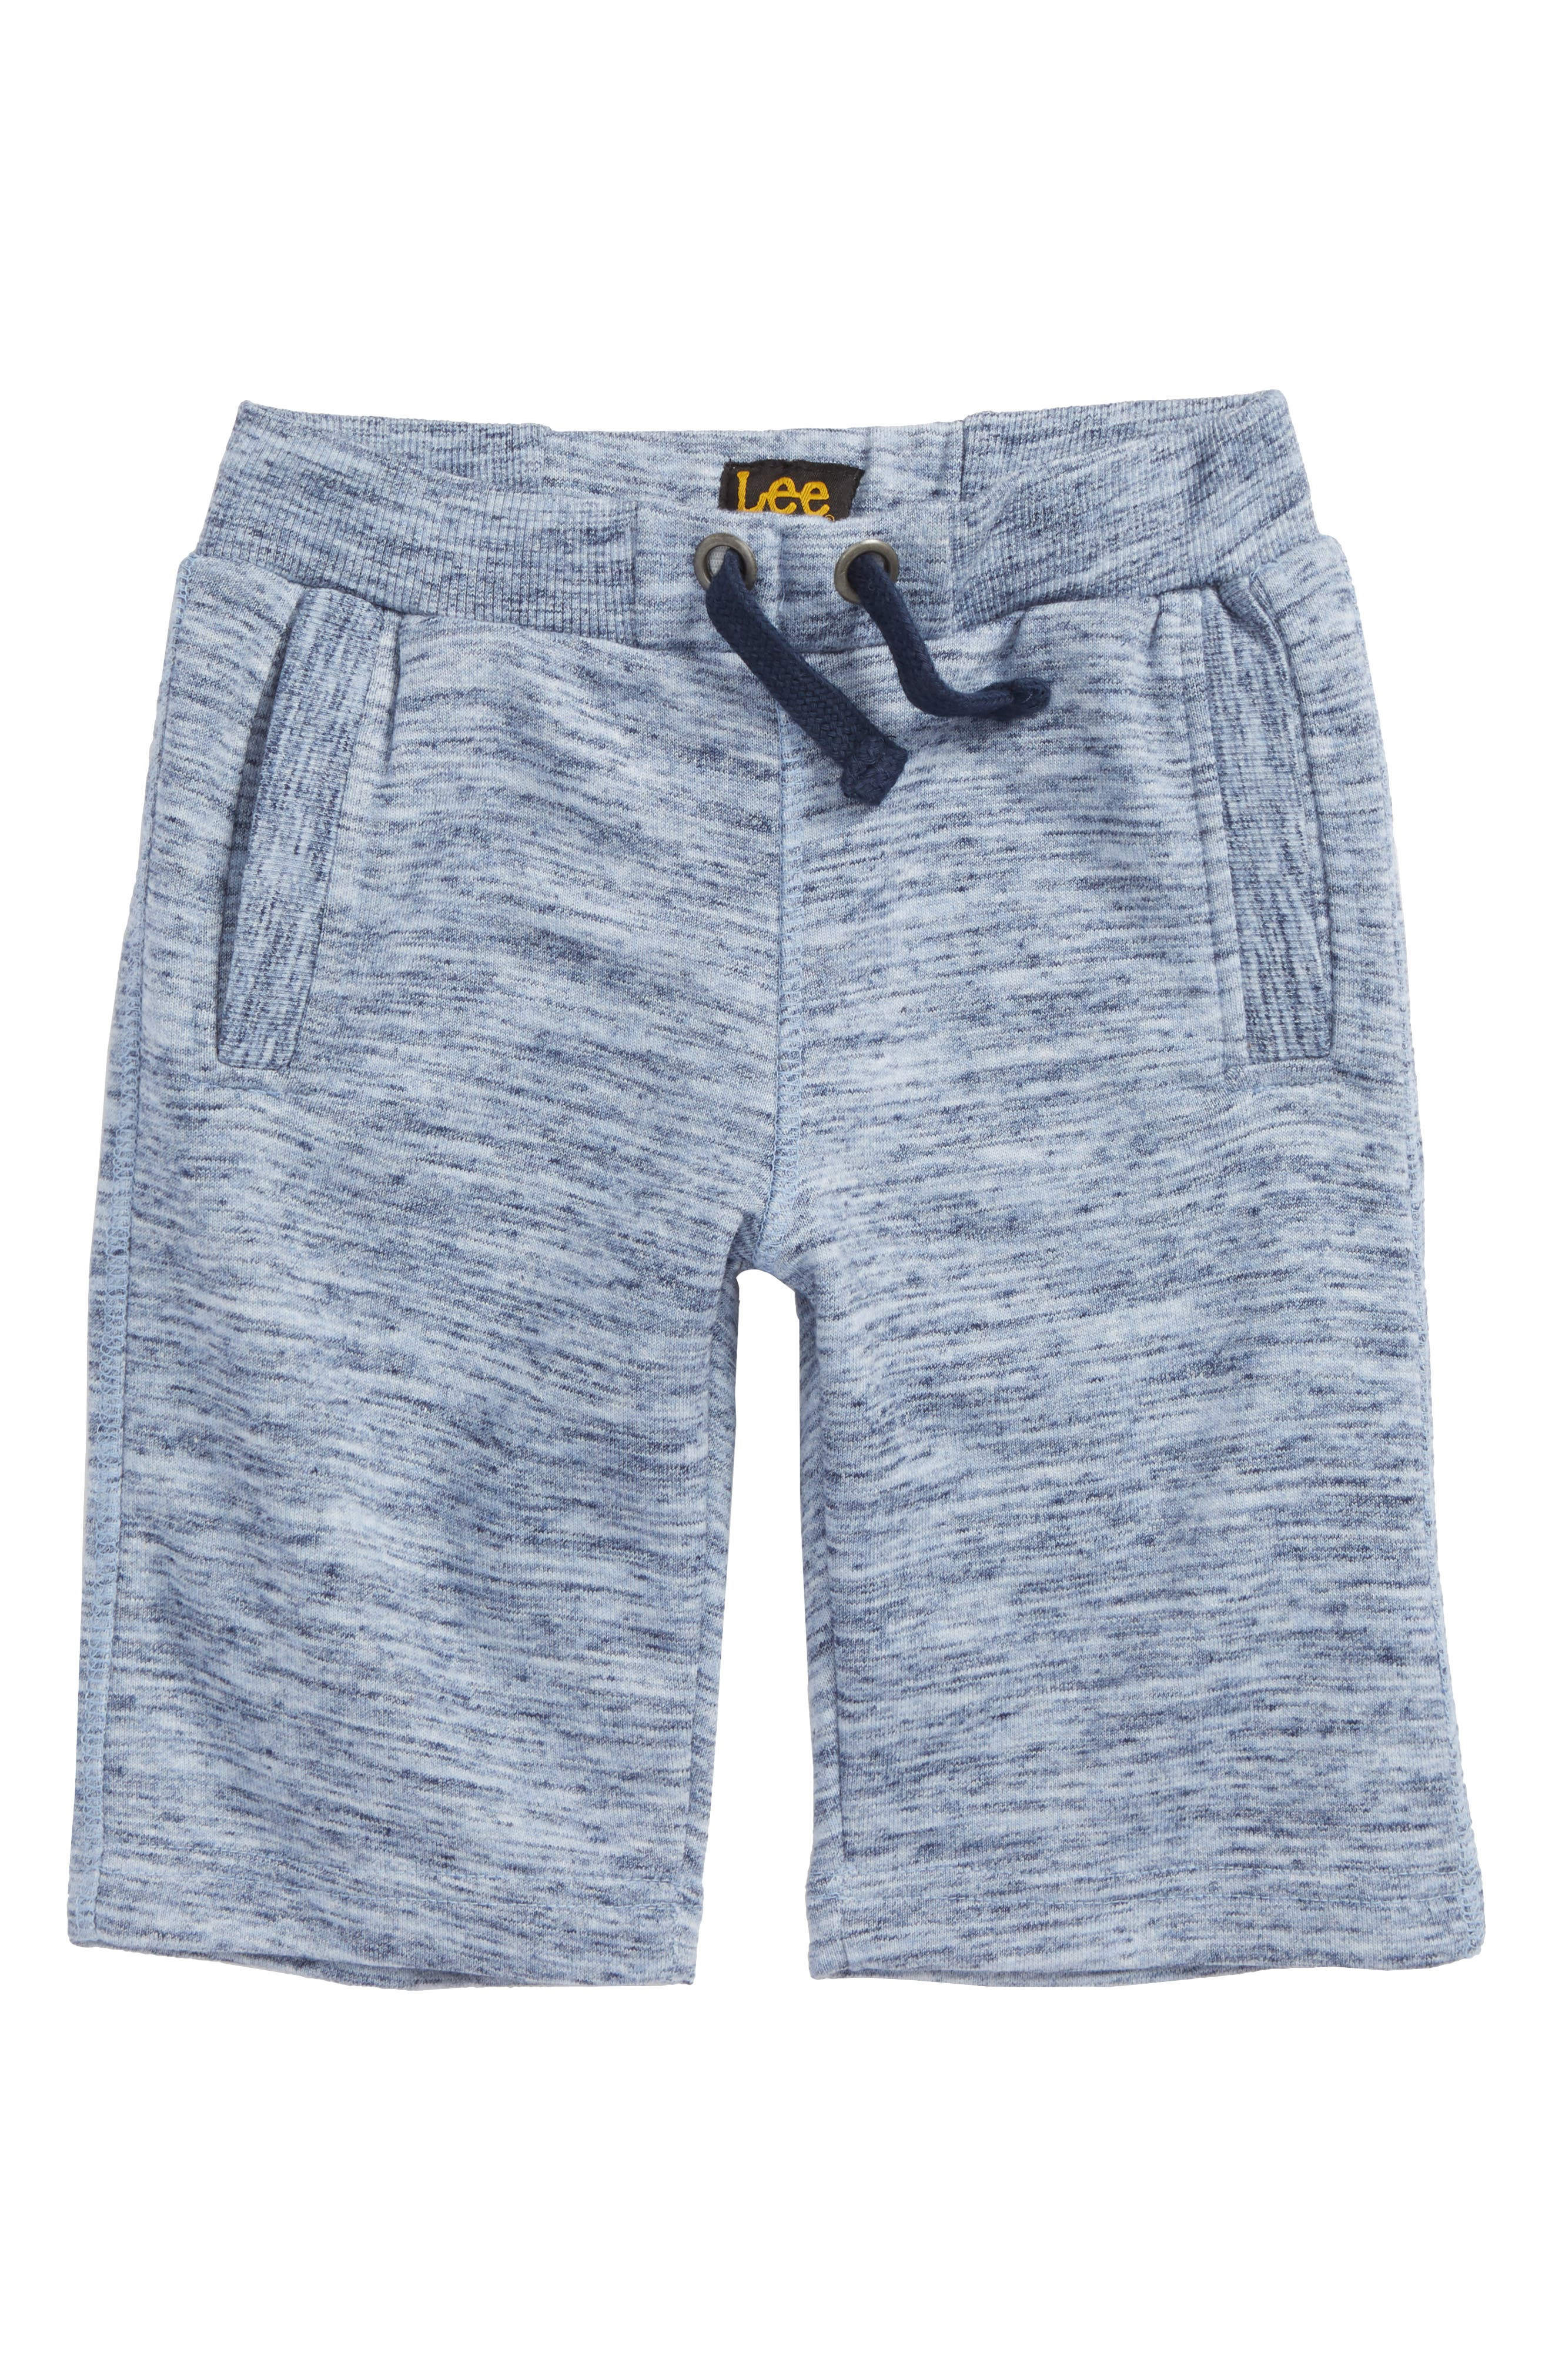 Lee French Terry Knit Shorts (Toddler Boys & Little Boys)